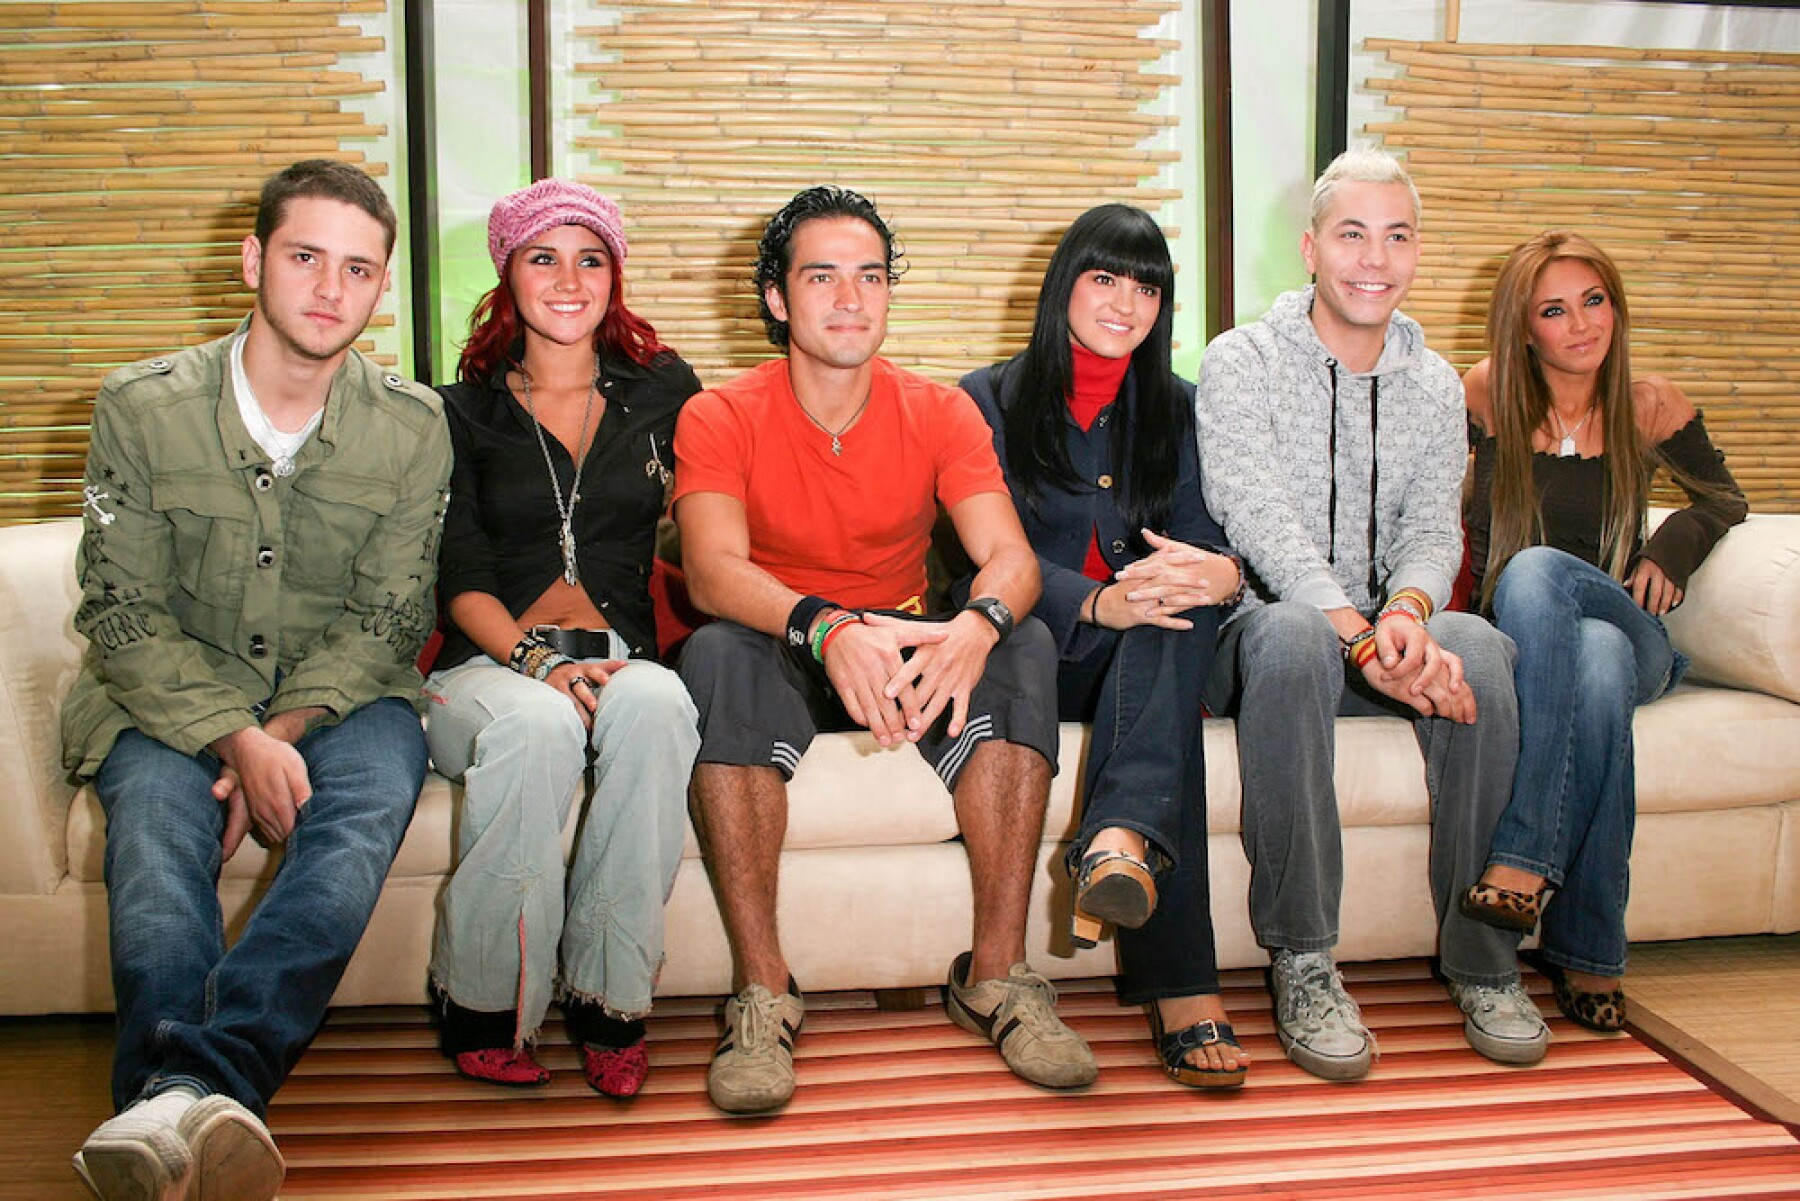 RBD Announce Their New Album Celestial Fan Edition At Their Mexico City Press Conference